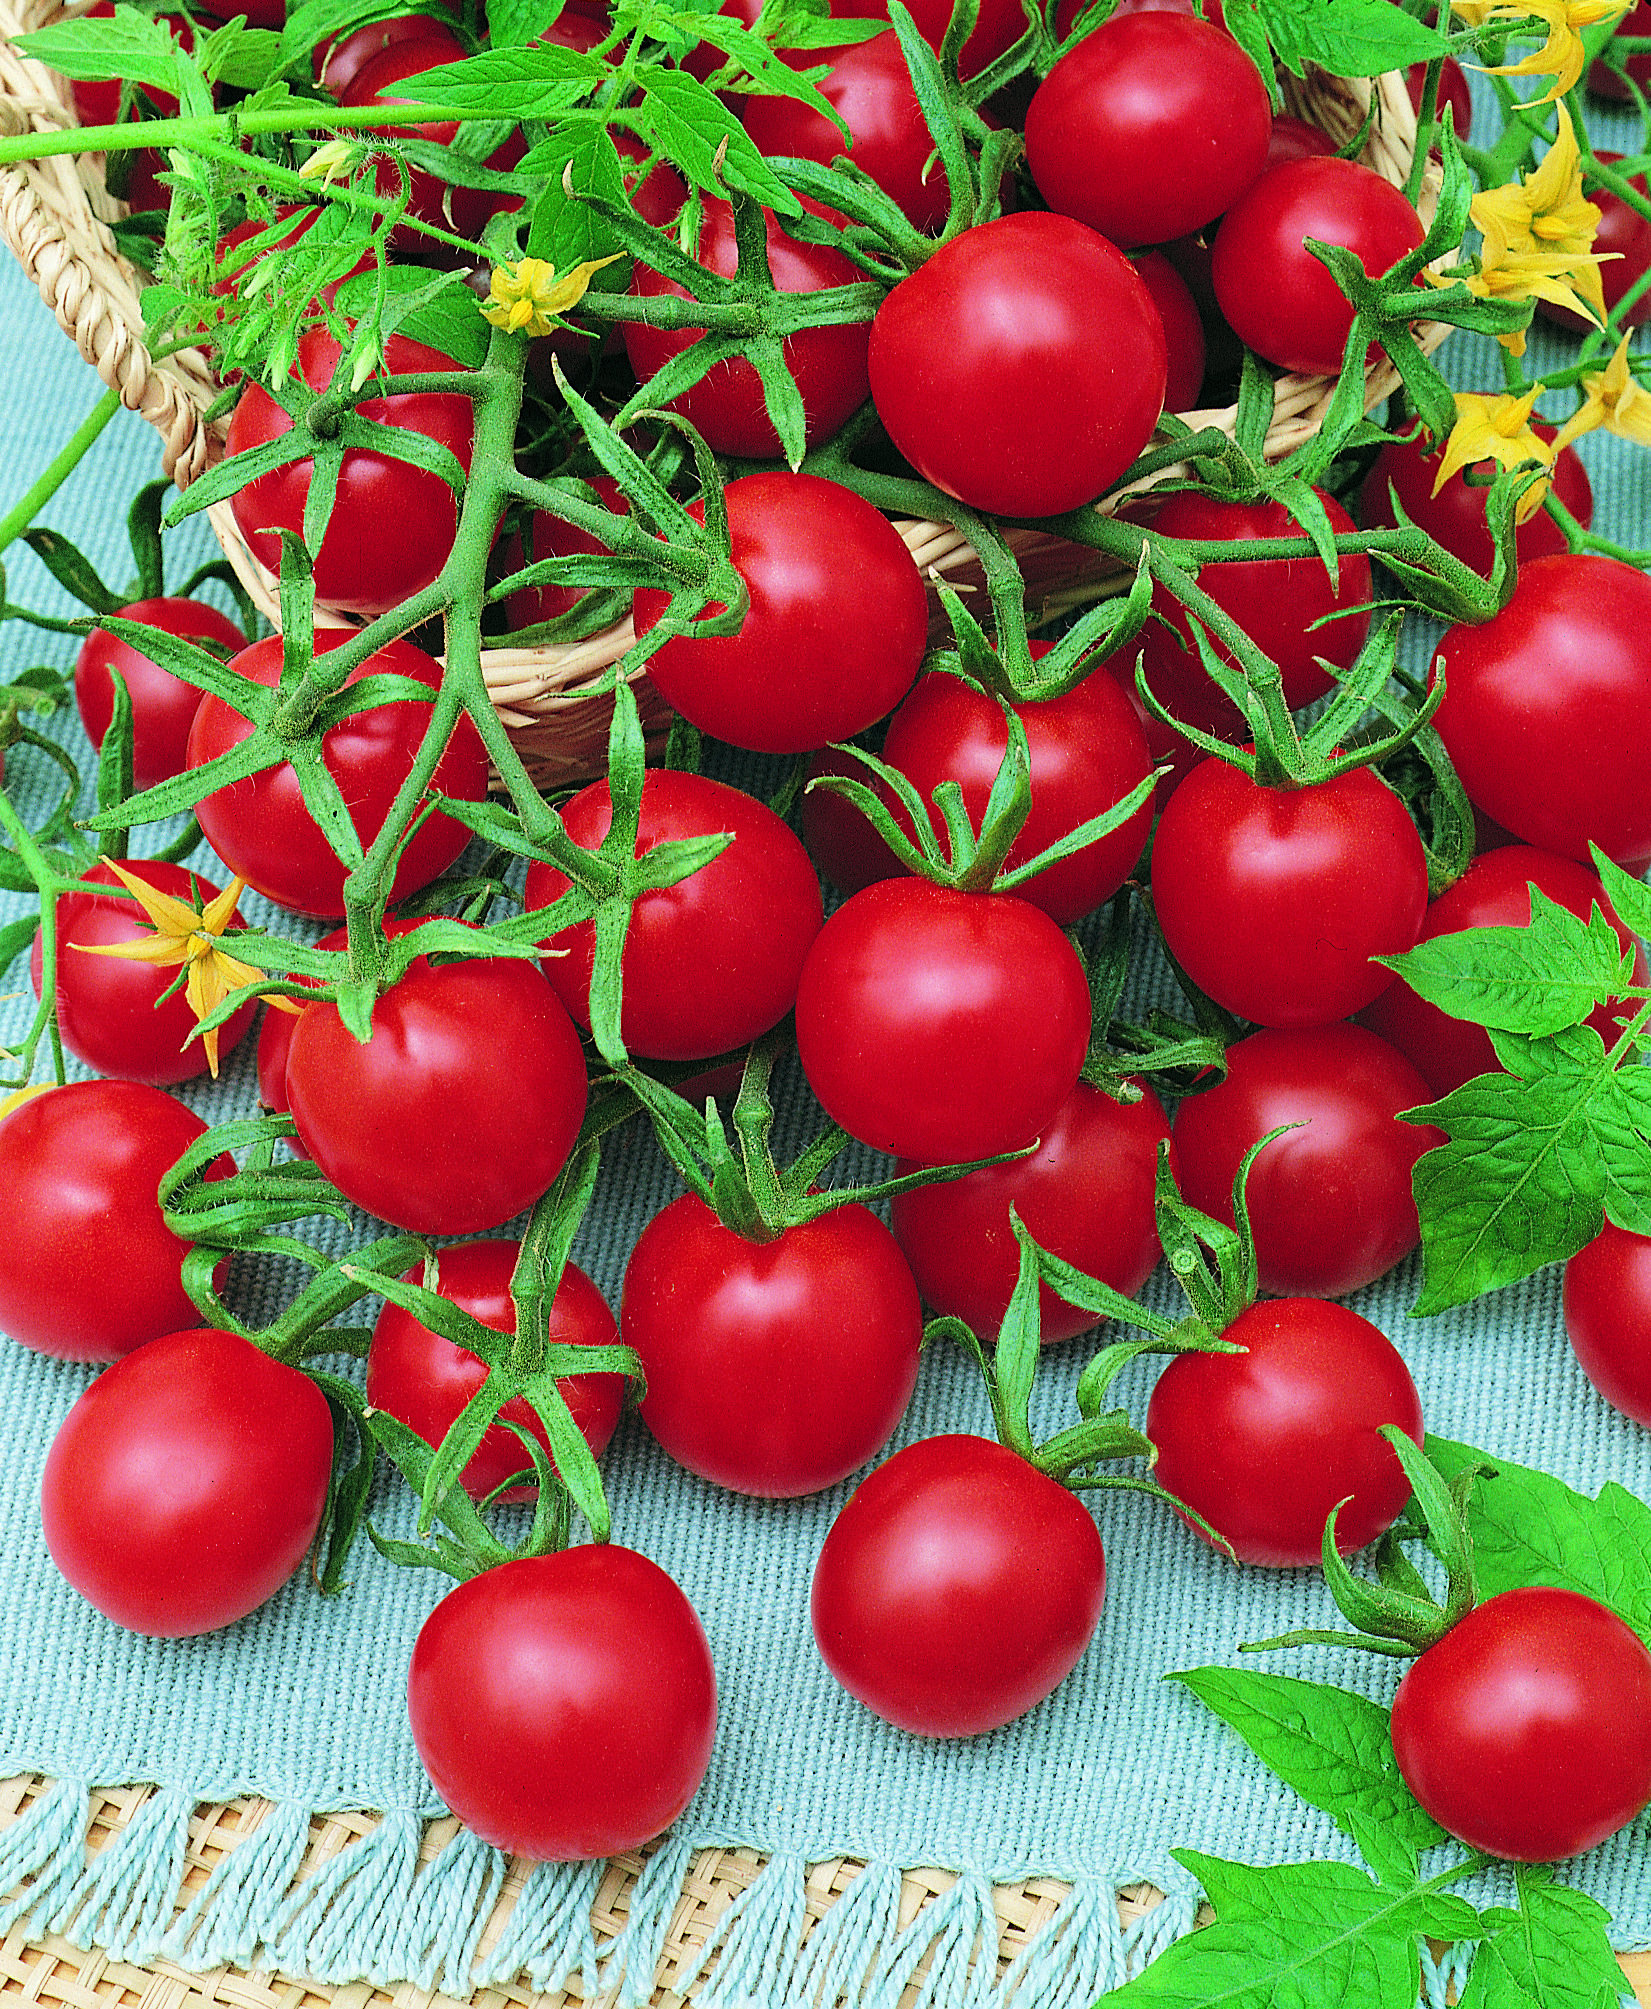 Supersweet 100 f1 tomato seed seed time harvest for How to grow cherry tomatoes from seeds